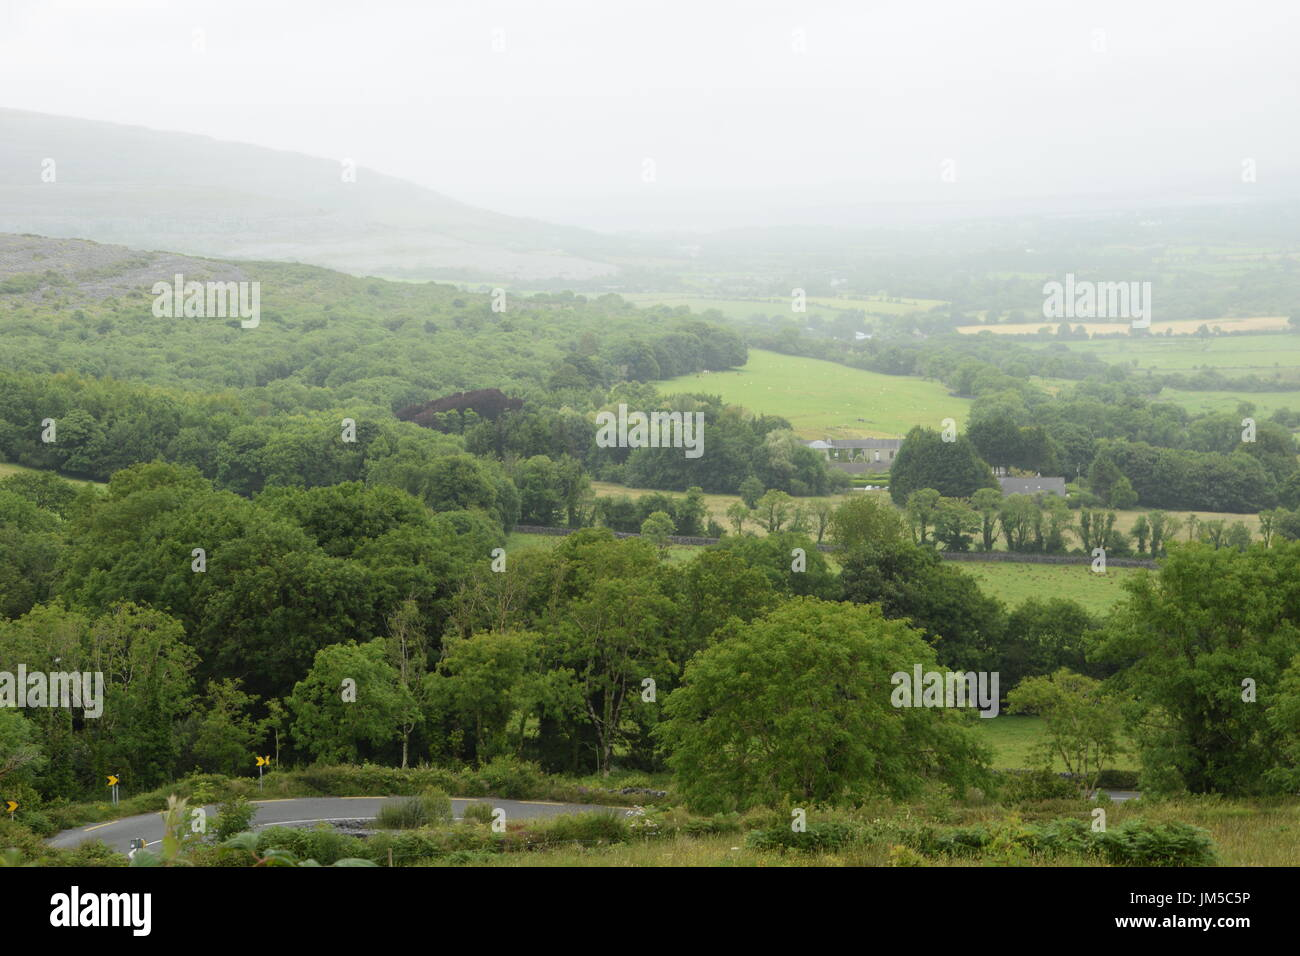 View of the area from the Corkscrew Hill in the County Clare, west Ireland - Stock Image